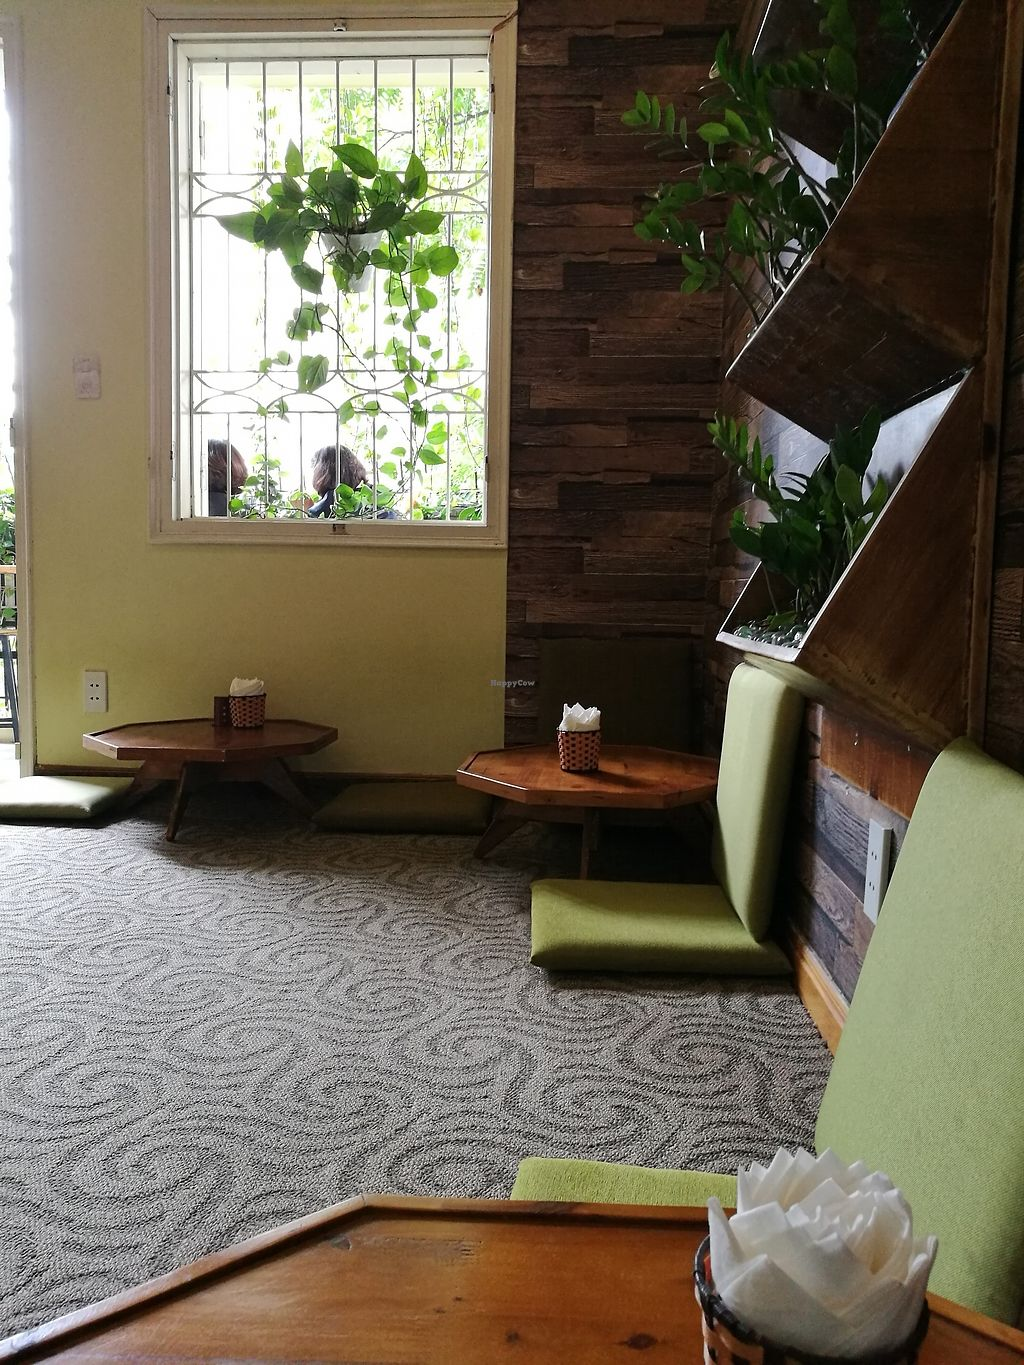 """Photo of Tinh Tam Tra  by <a href=""""/members/profile/VolleyMacaroni"""">VolleyMacaroni</a> <br/>Spacious seating upstairs + beautiful balcony outside <br/> April 5, 2018  - <a href='/contact/abuse/image/95959/380961'>Report</a>"""